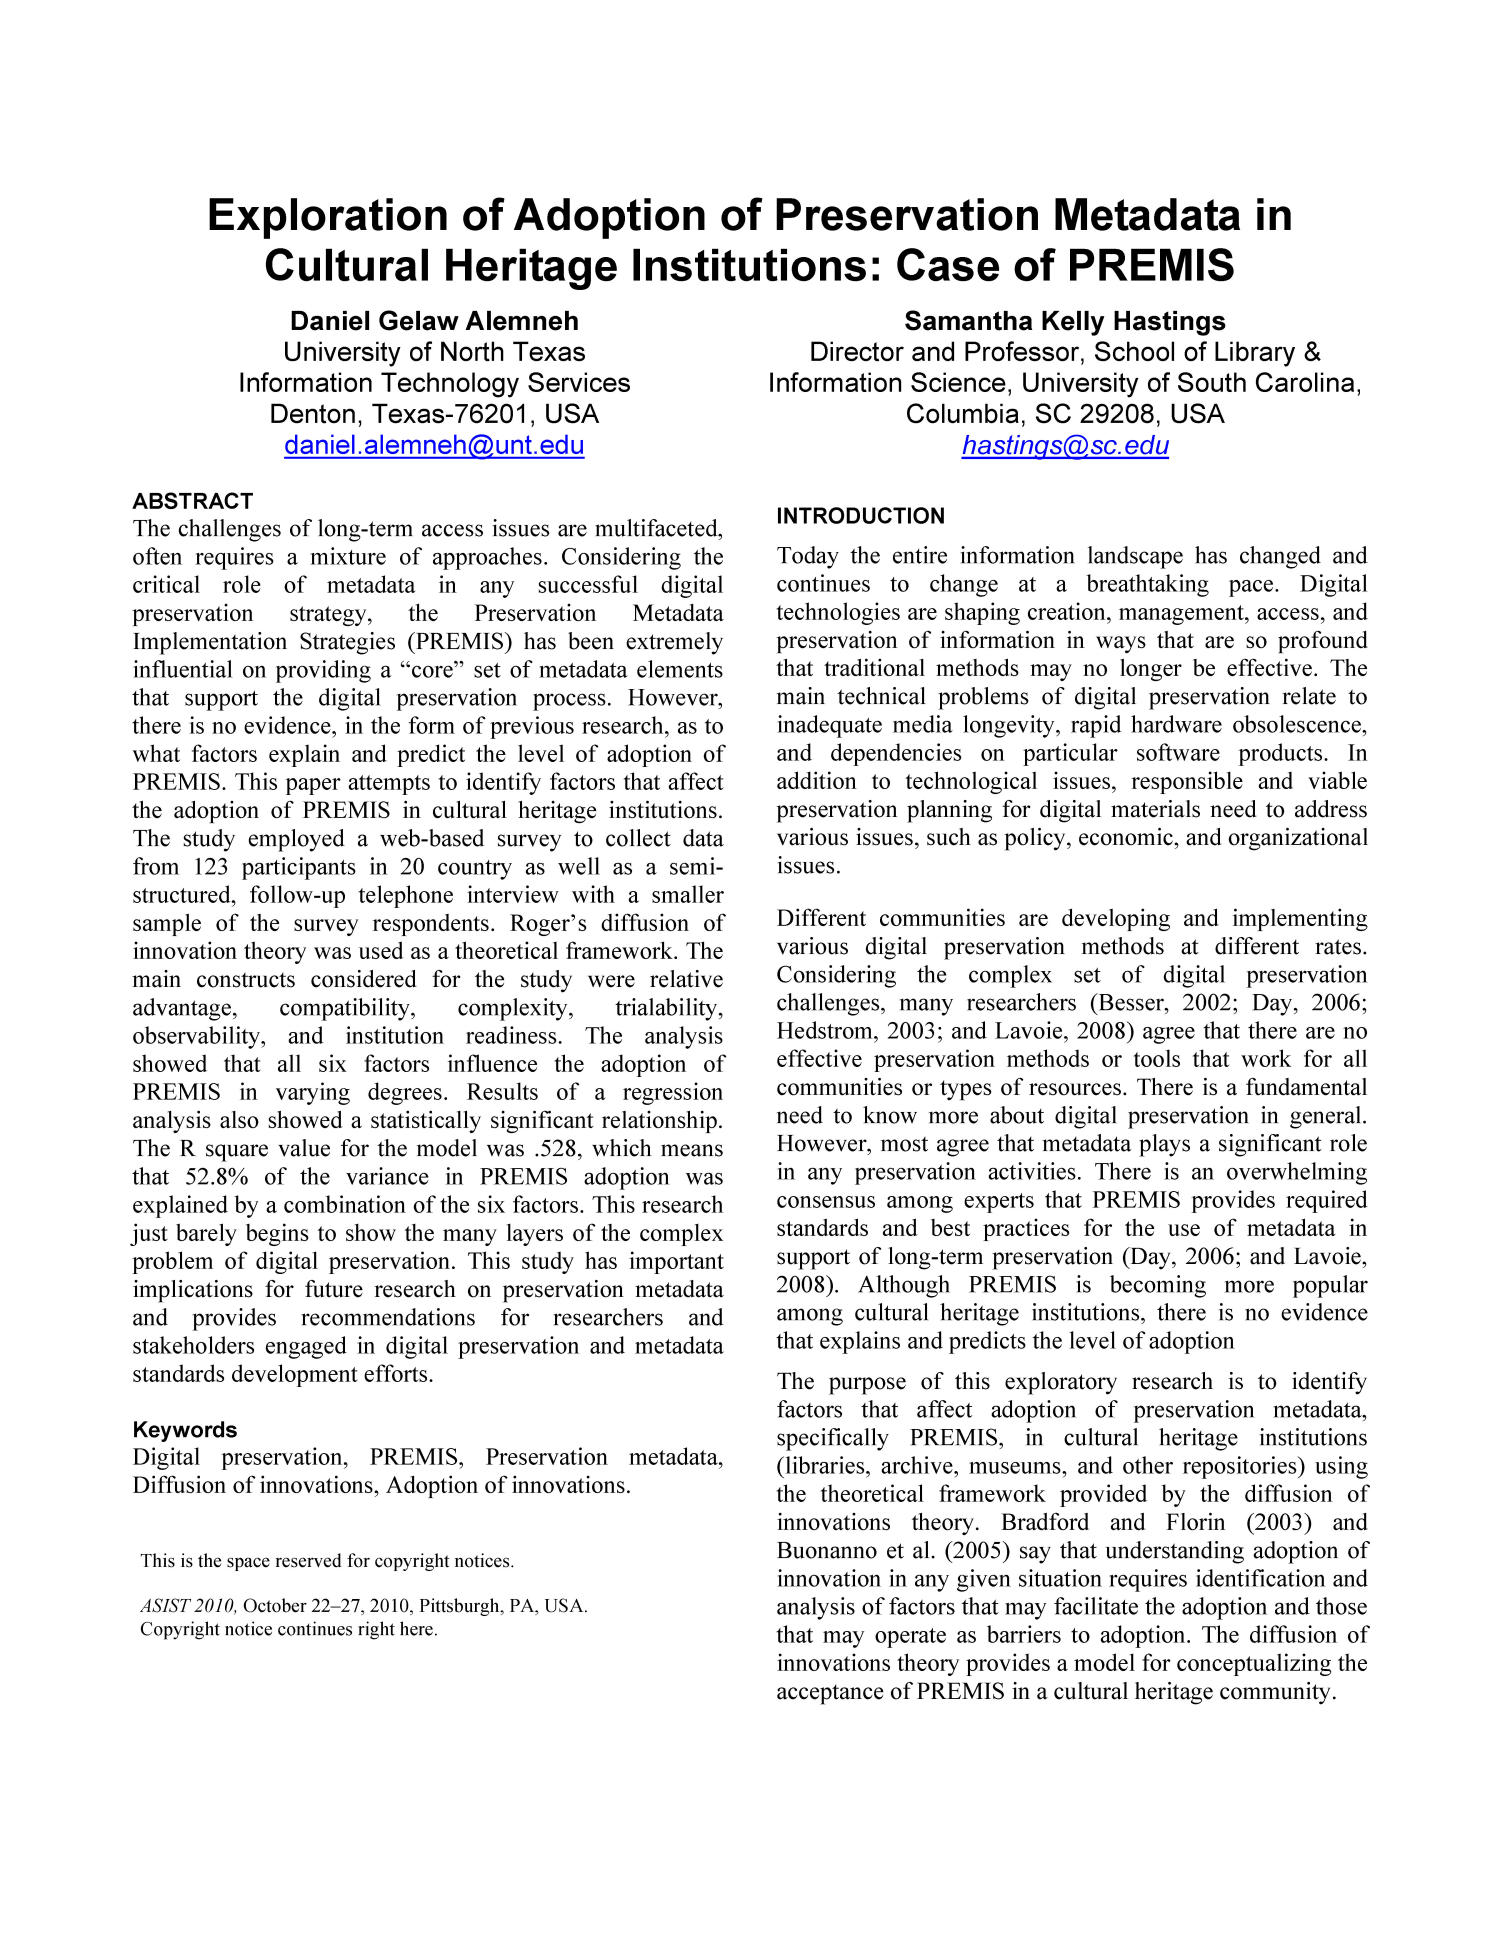 Exploration of Adoption of Preservation Metadata in Cultural Heritage Institutions                                                                                                      1